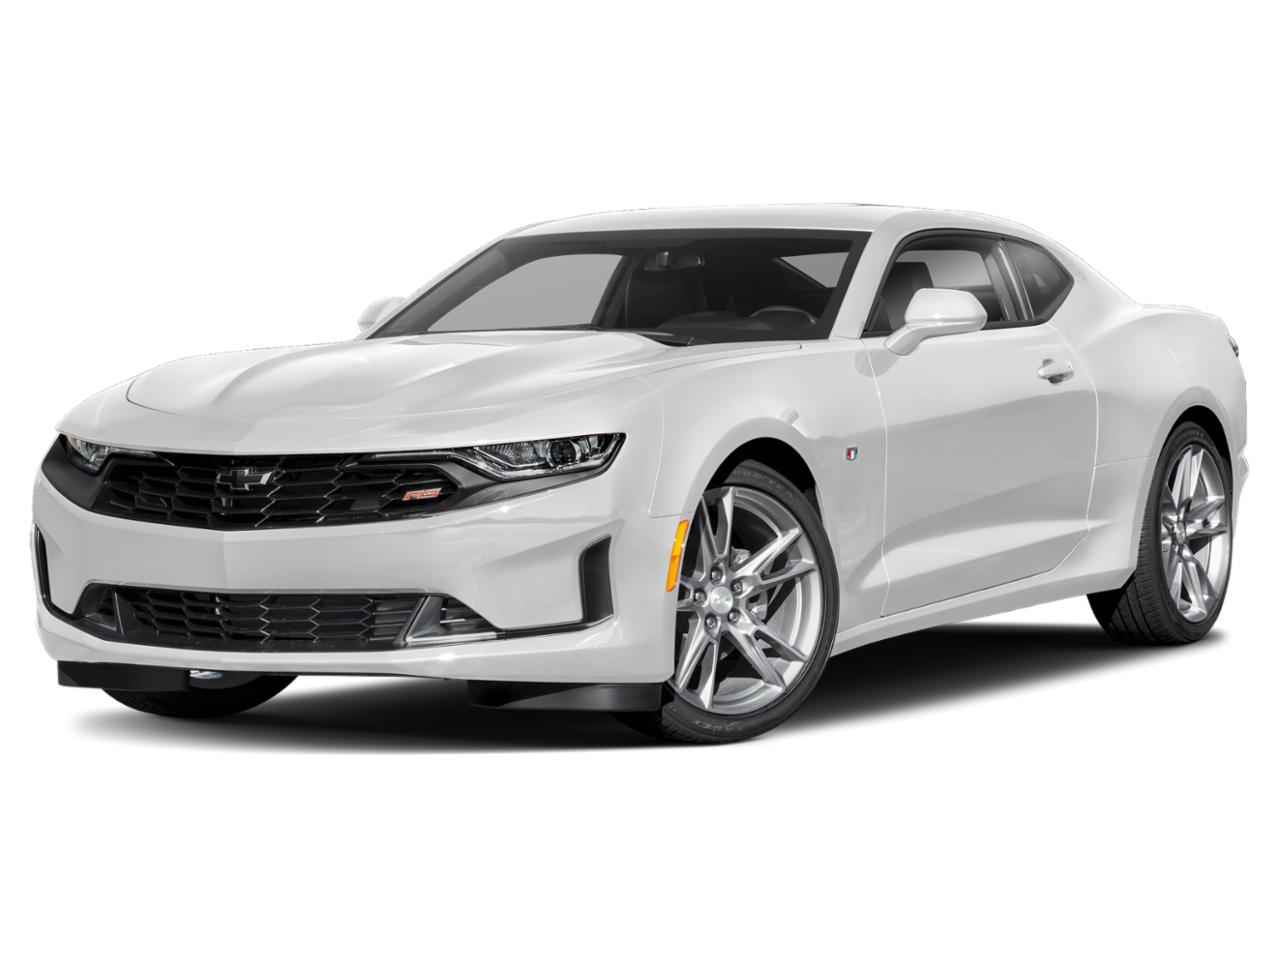 2019 Chevrolet Camaro 1LT 2dr Car Slide